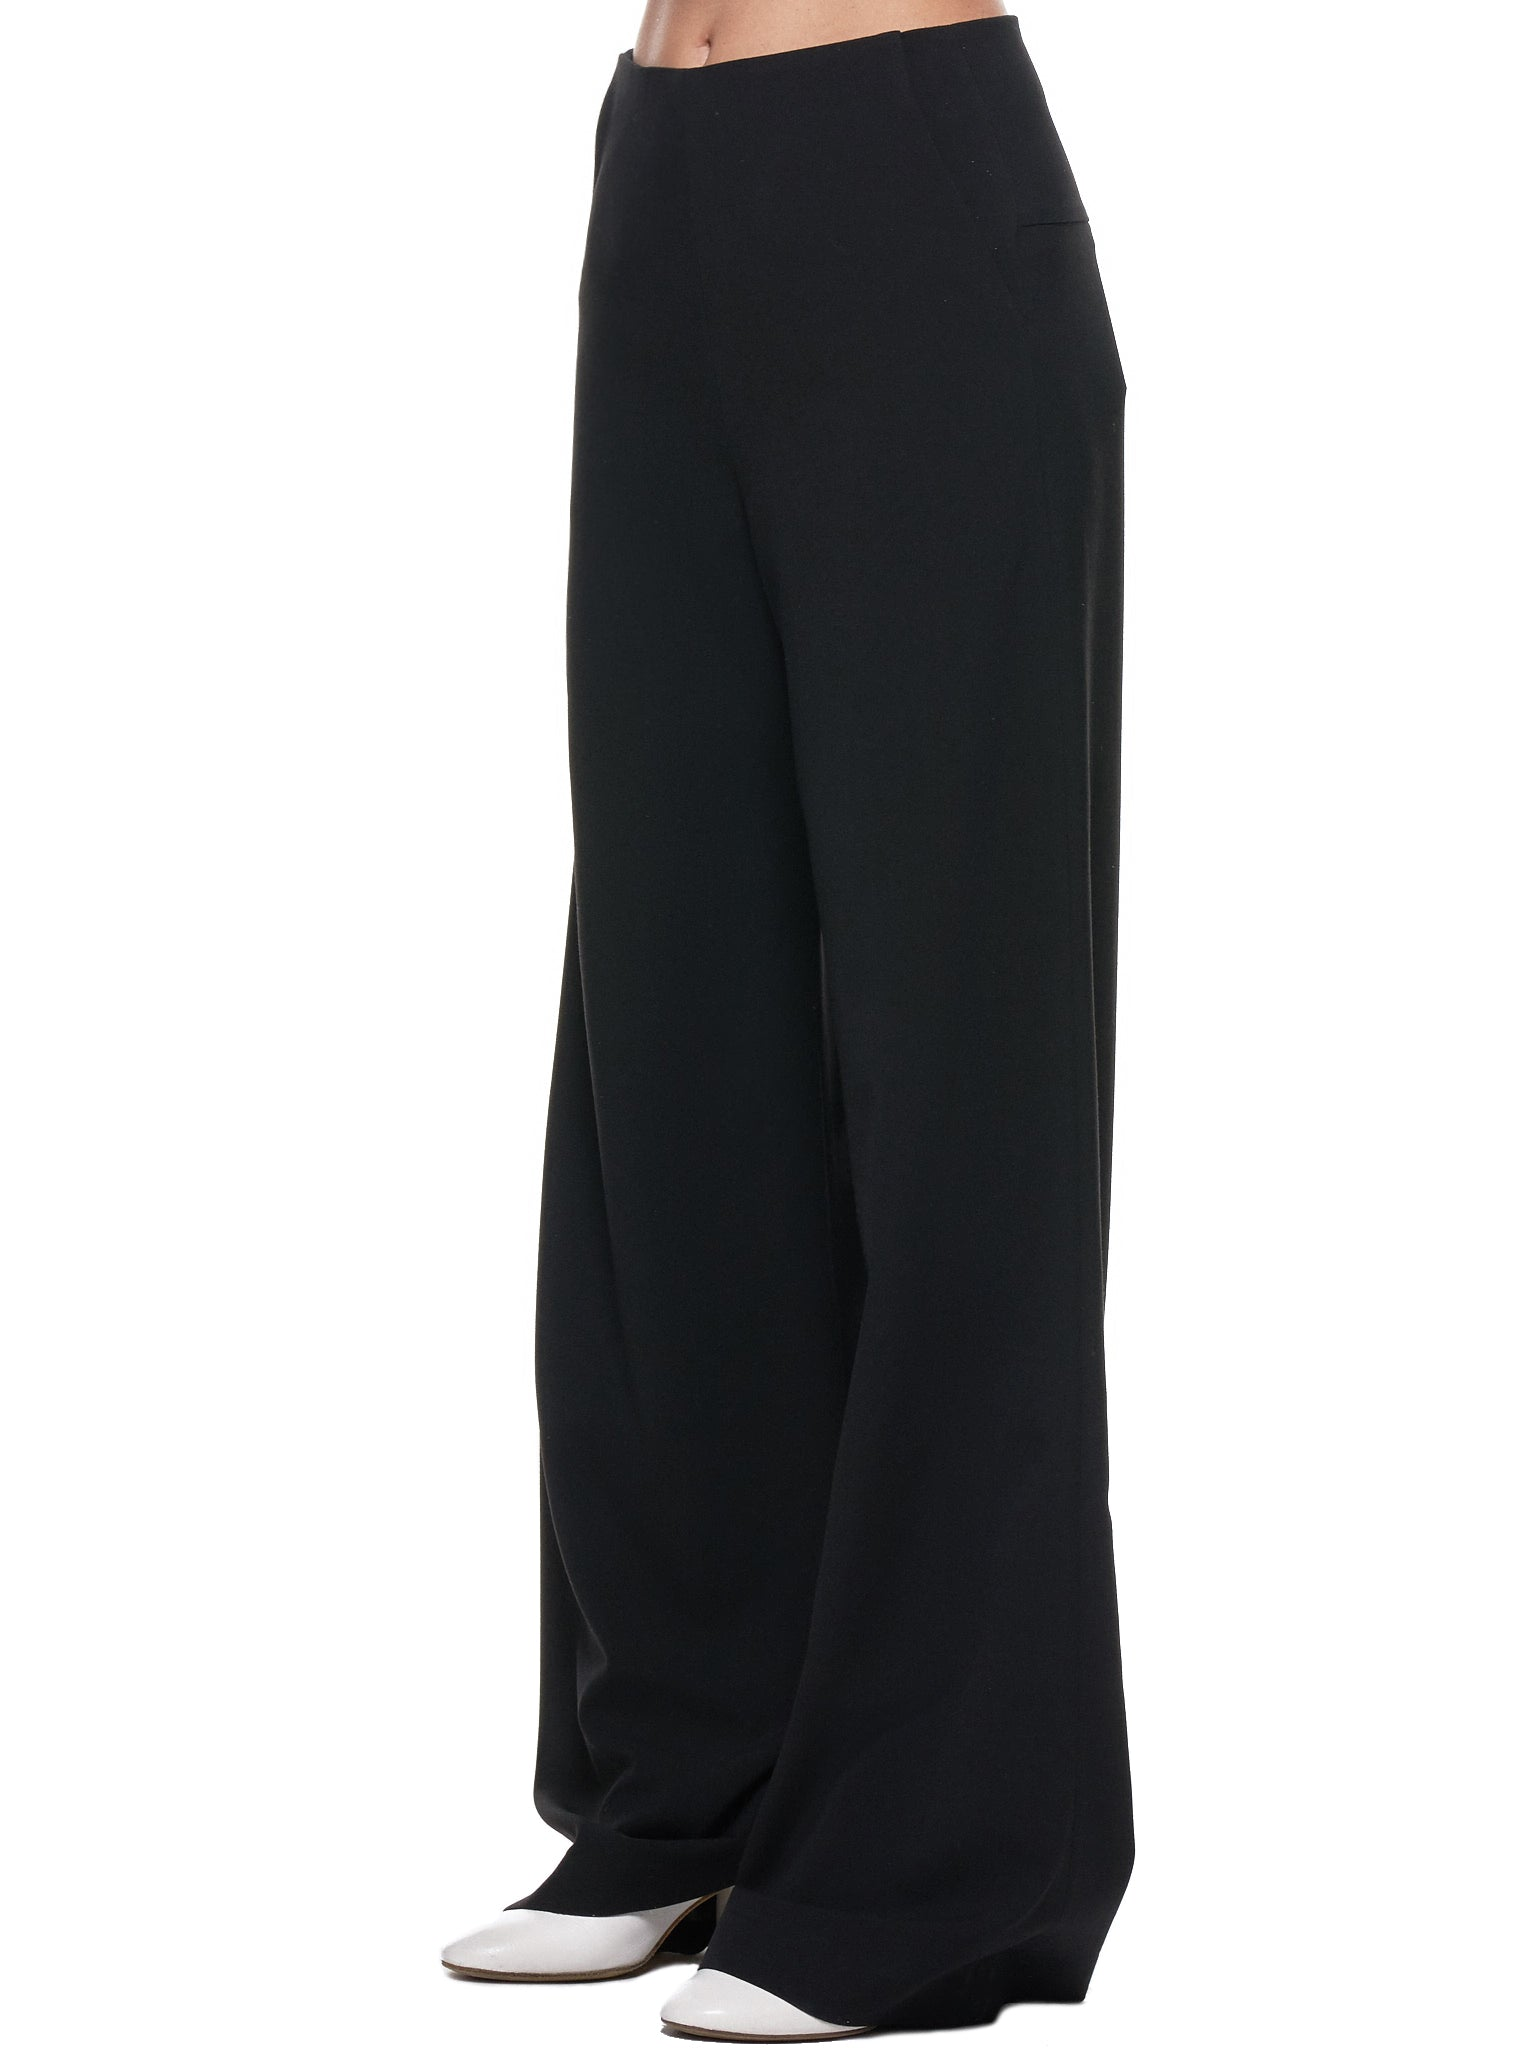 Paula Knorr Pants - Hlorenzo Side